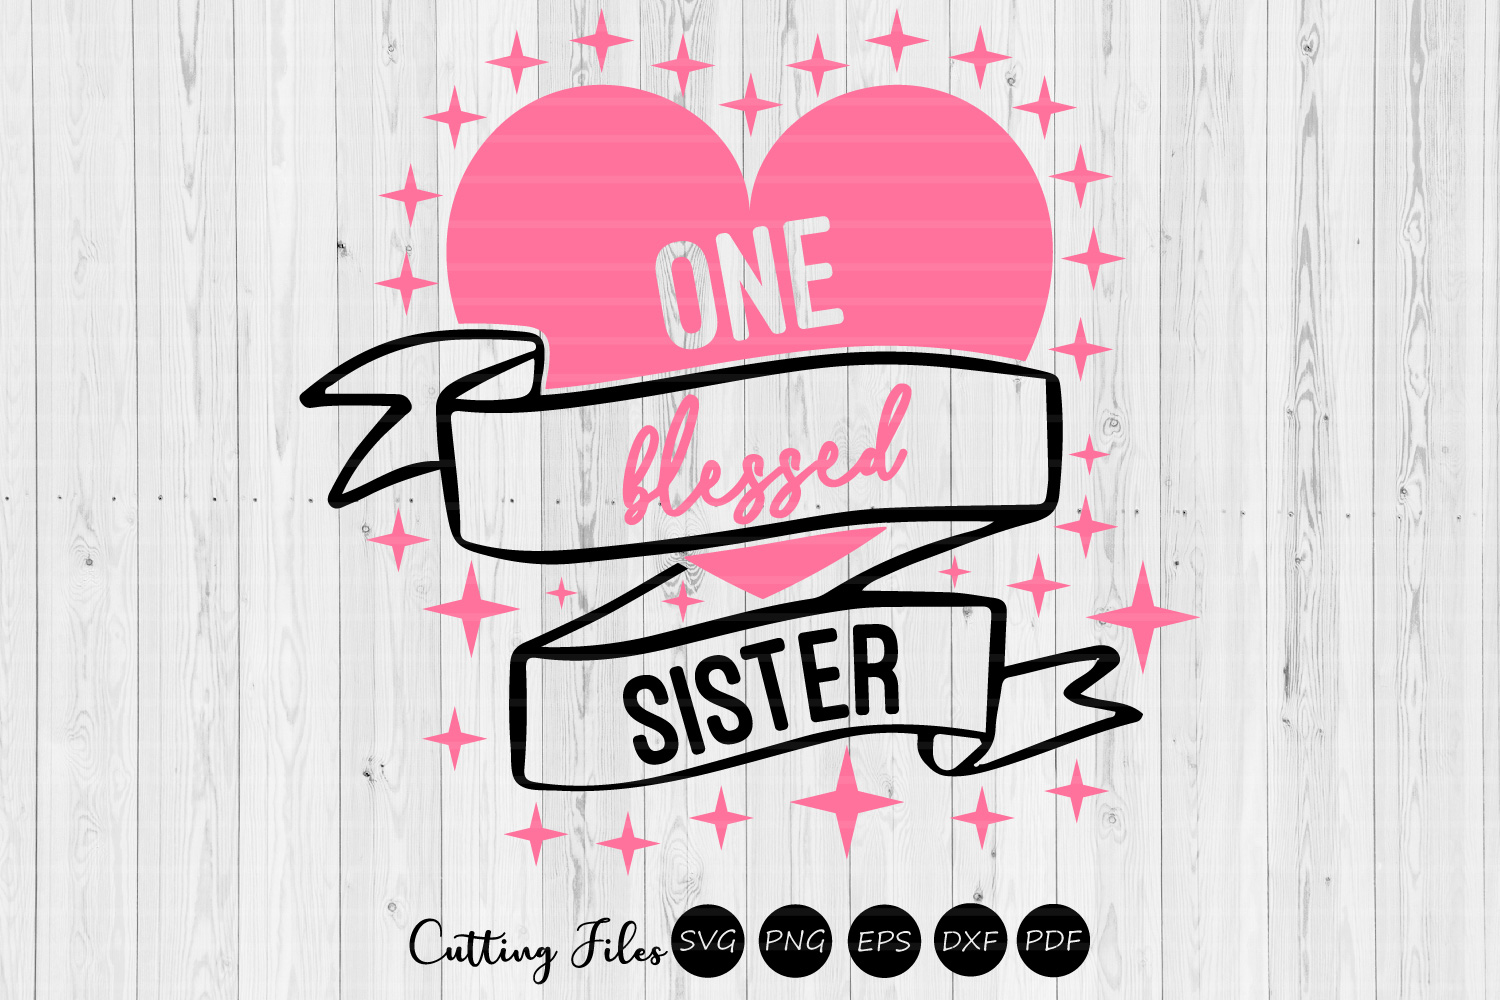 Download Free One Blessed Sister Graphic By Hd Art Workshop Creative Fabrica for Cricut Explore, Silhouette and other cutting machines.